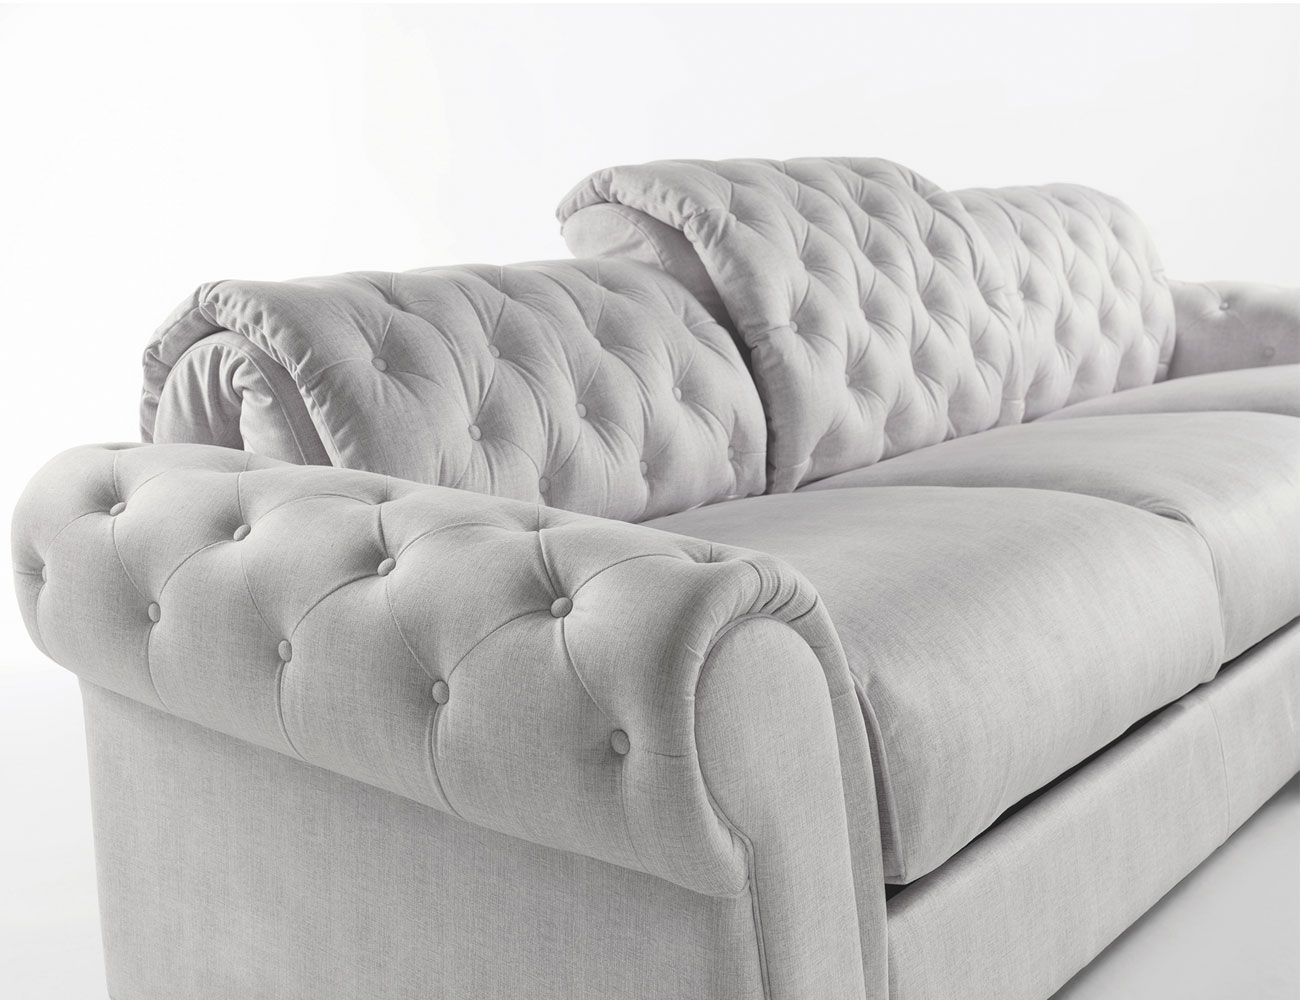 Sofa chaiselongue gran lujo decorativo capitone blanco tela 128